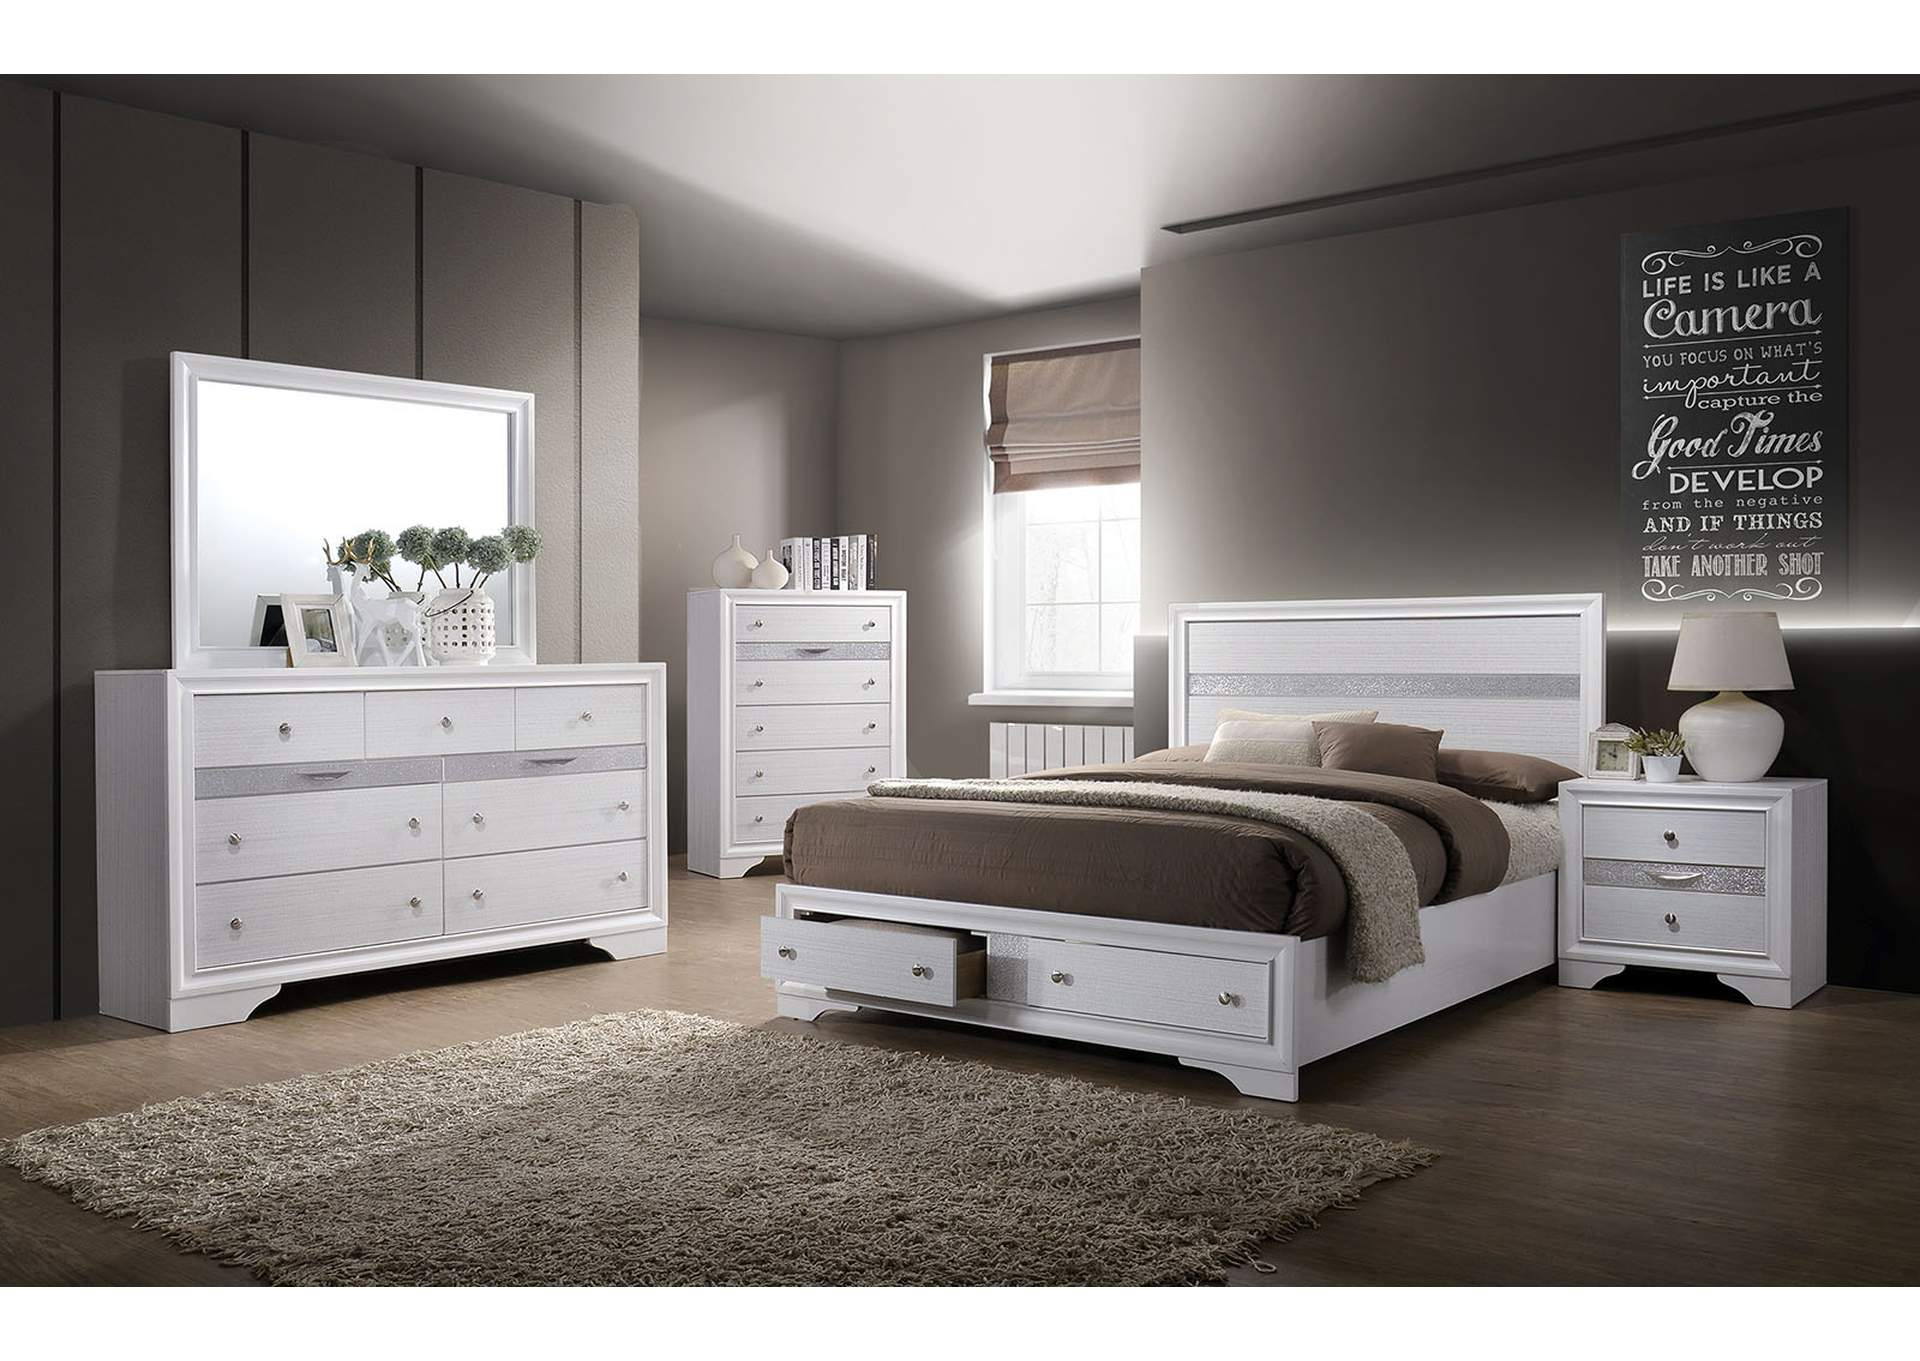 Surprising Best Buy Furniture And Mattress Chrissy White Queen Storage Bed Beutiful Home Inspiration Ommitmahrainfo